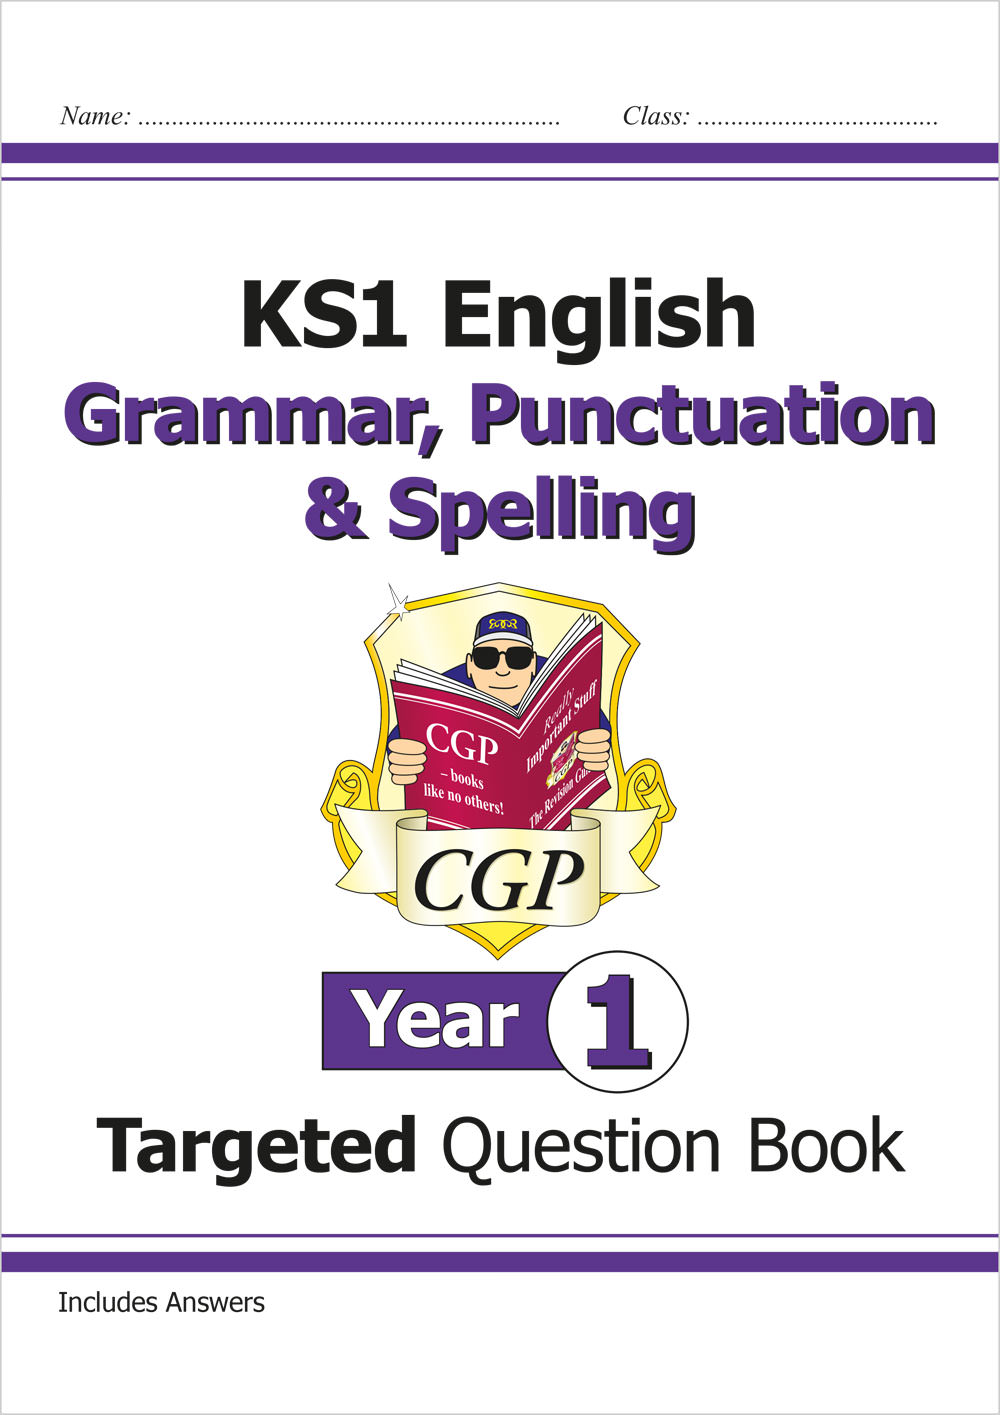 E1W11 - KS1 English Targeted Question Book: Grammar, Punctuation & Spelling - Year 1